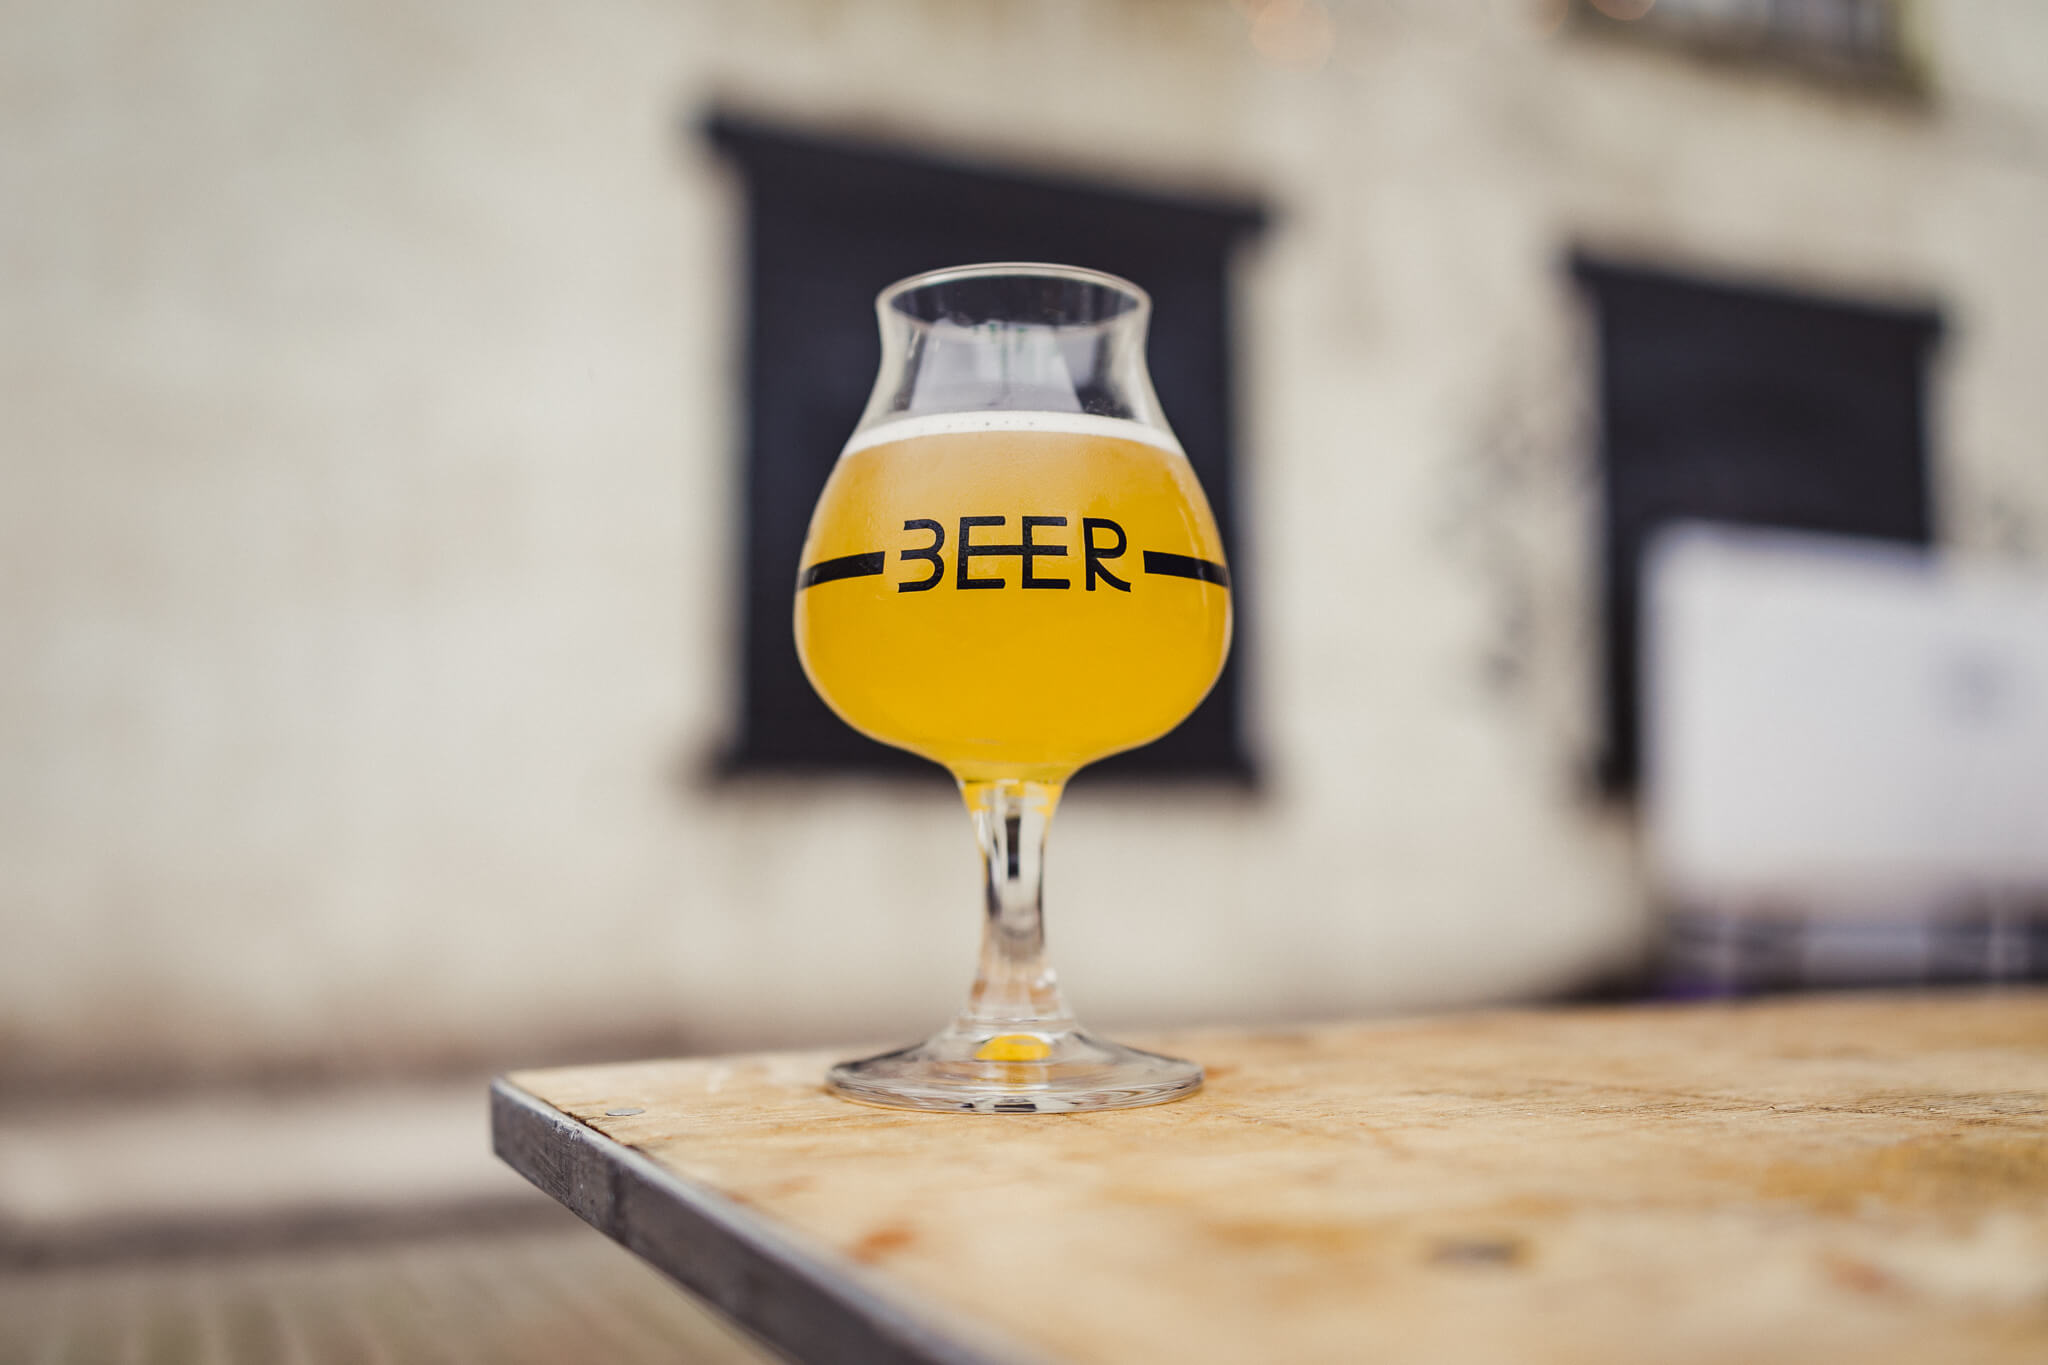 Leading lights of UK craft beer scene add weight behind campaign for #nationaltimeout